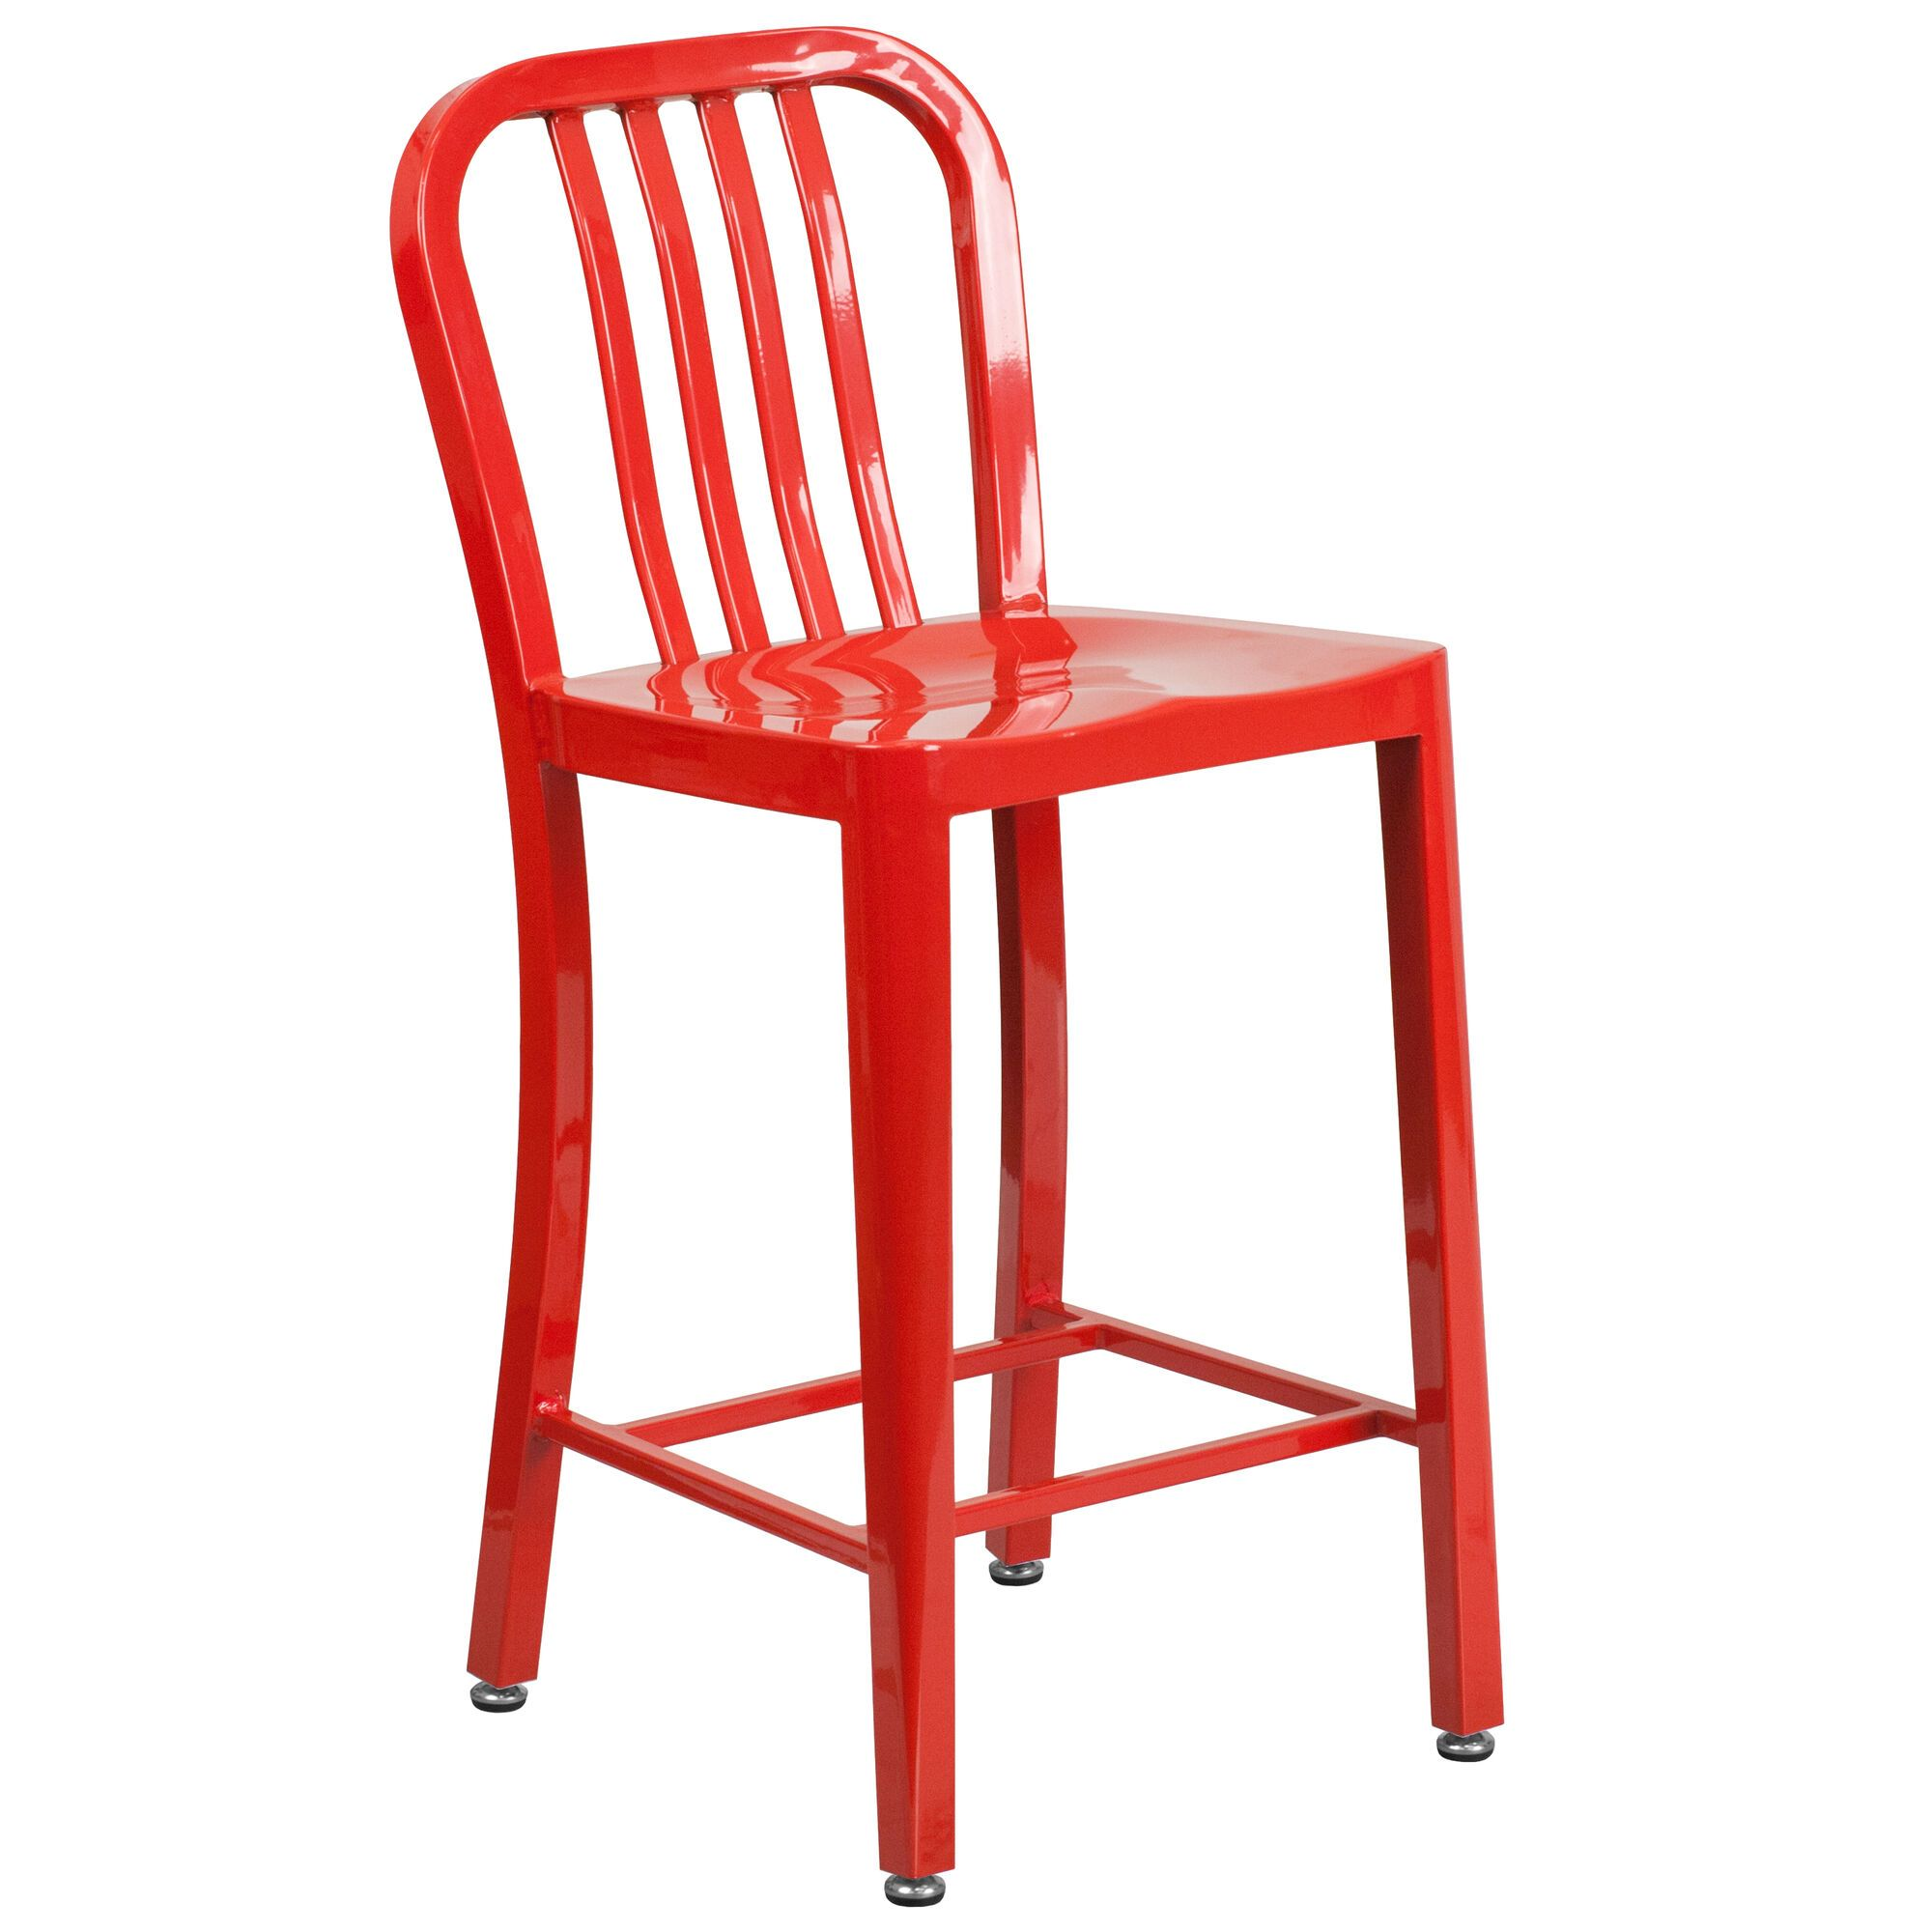 24 Red Metal Outdoor Stool Ch 61200 24 Red Gg Modern Counter Stools Flash Furniture Counter Height Stools